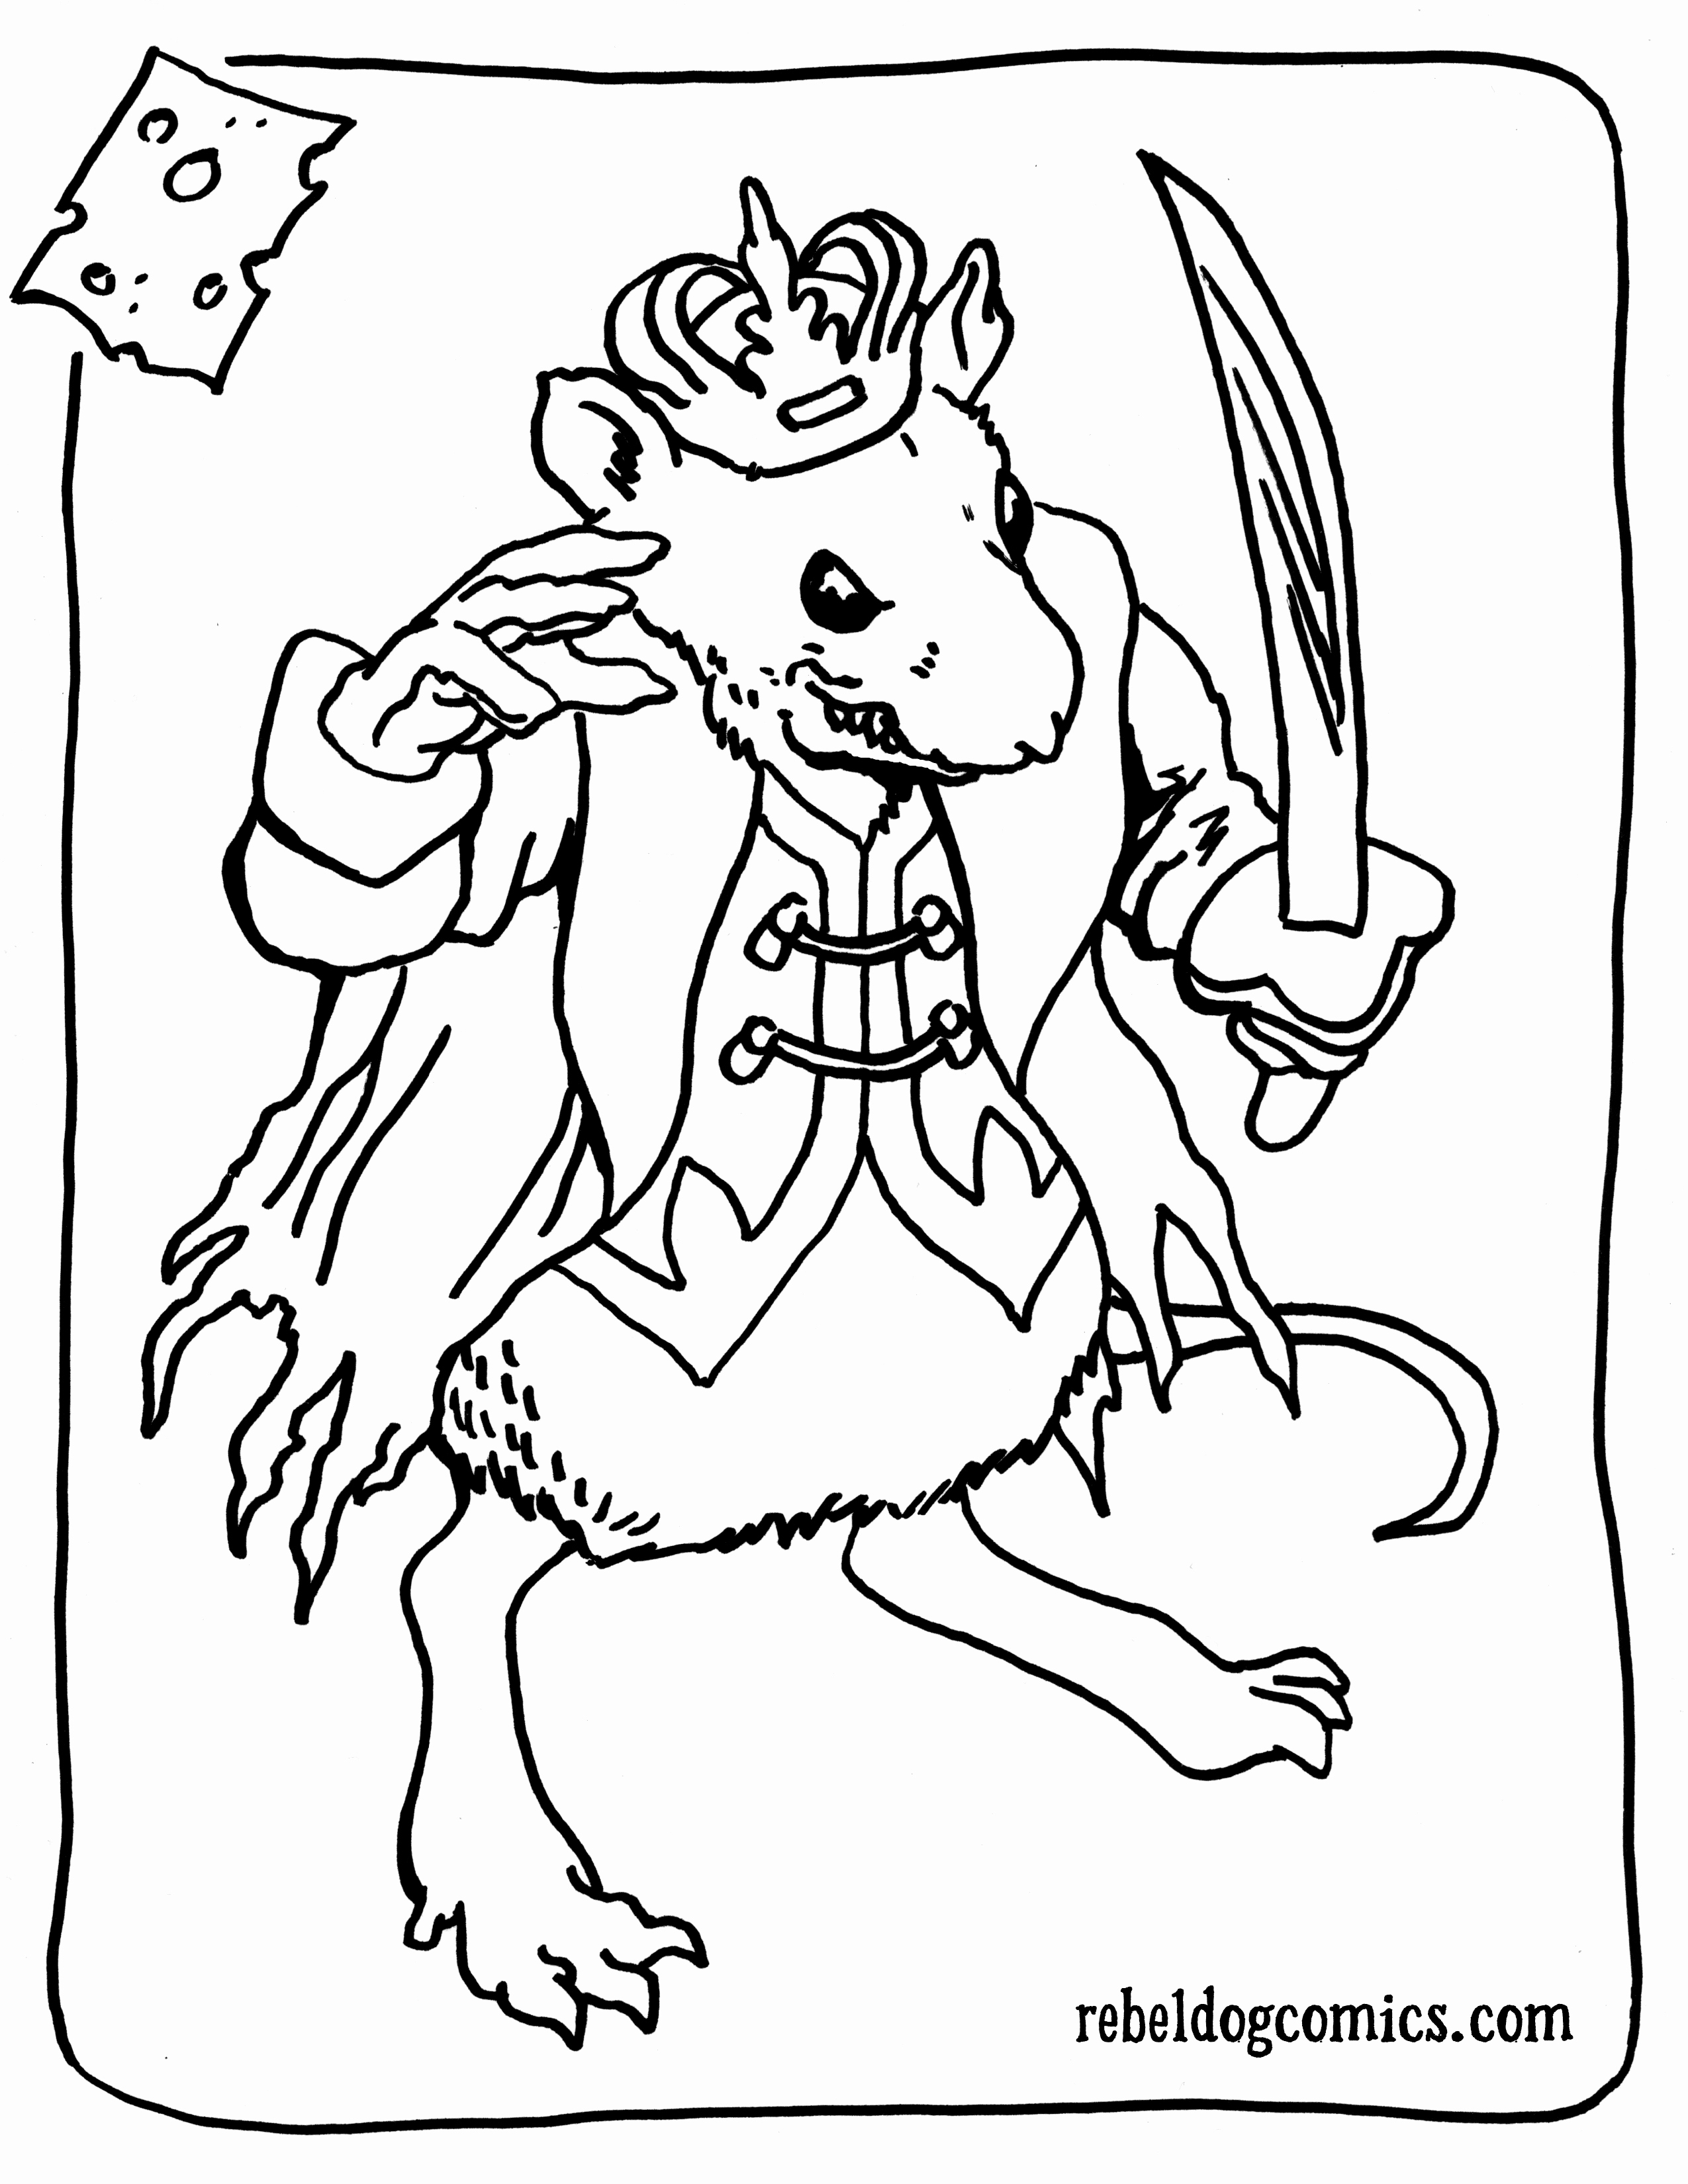 Dance Shoes Coloring Pages At Getcolorings